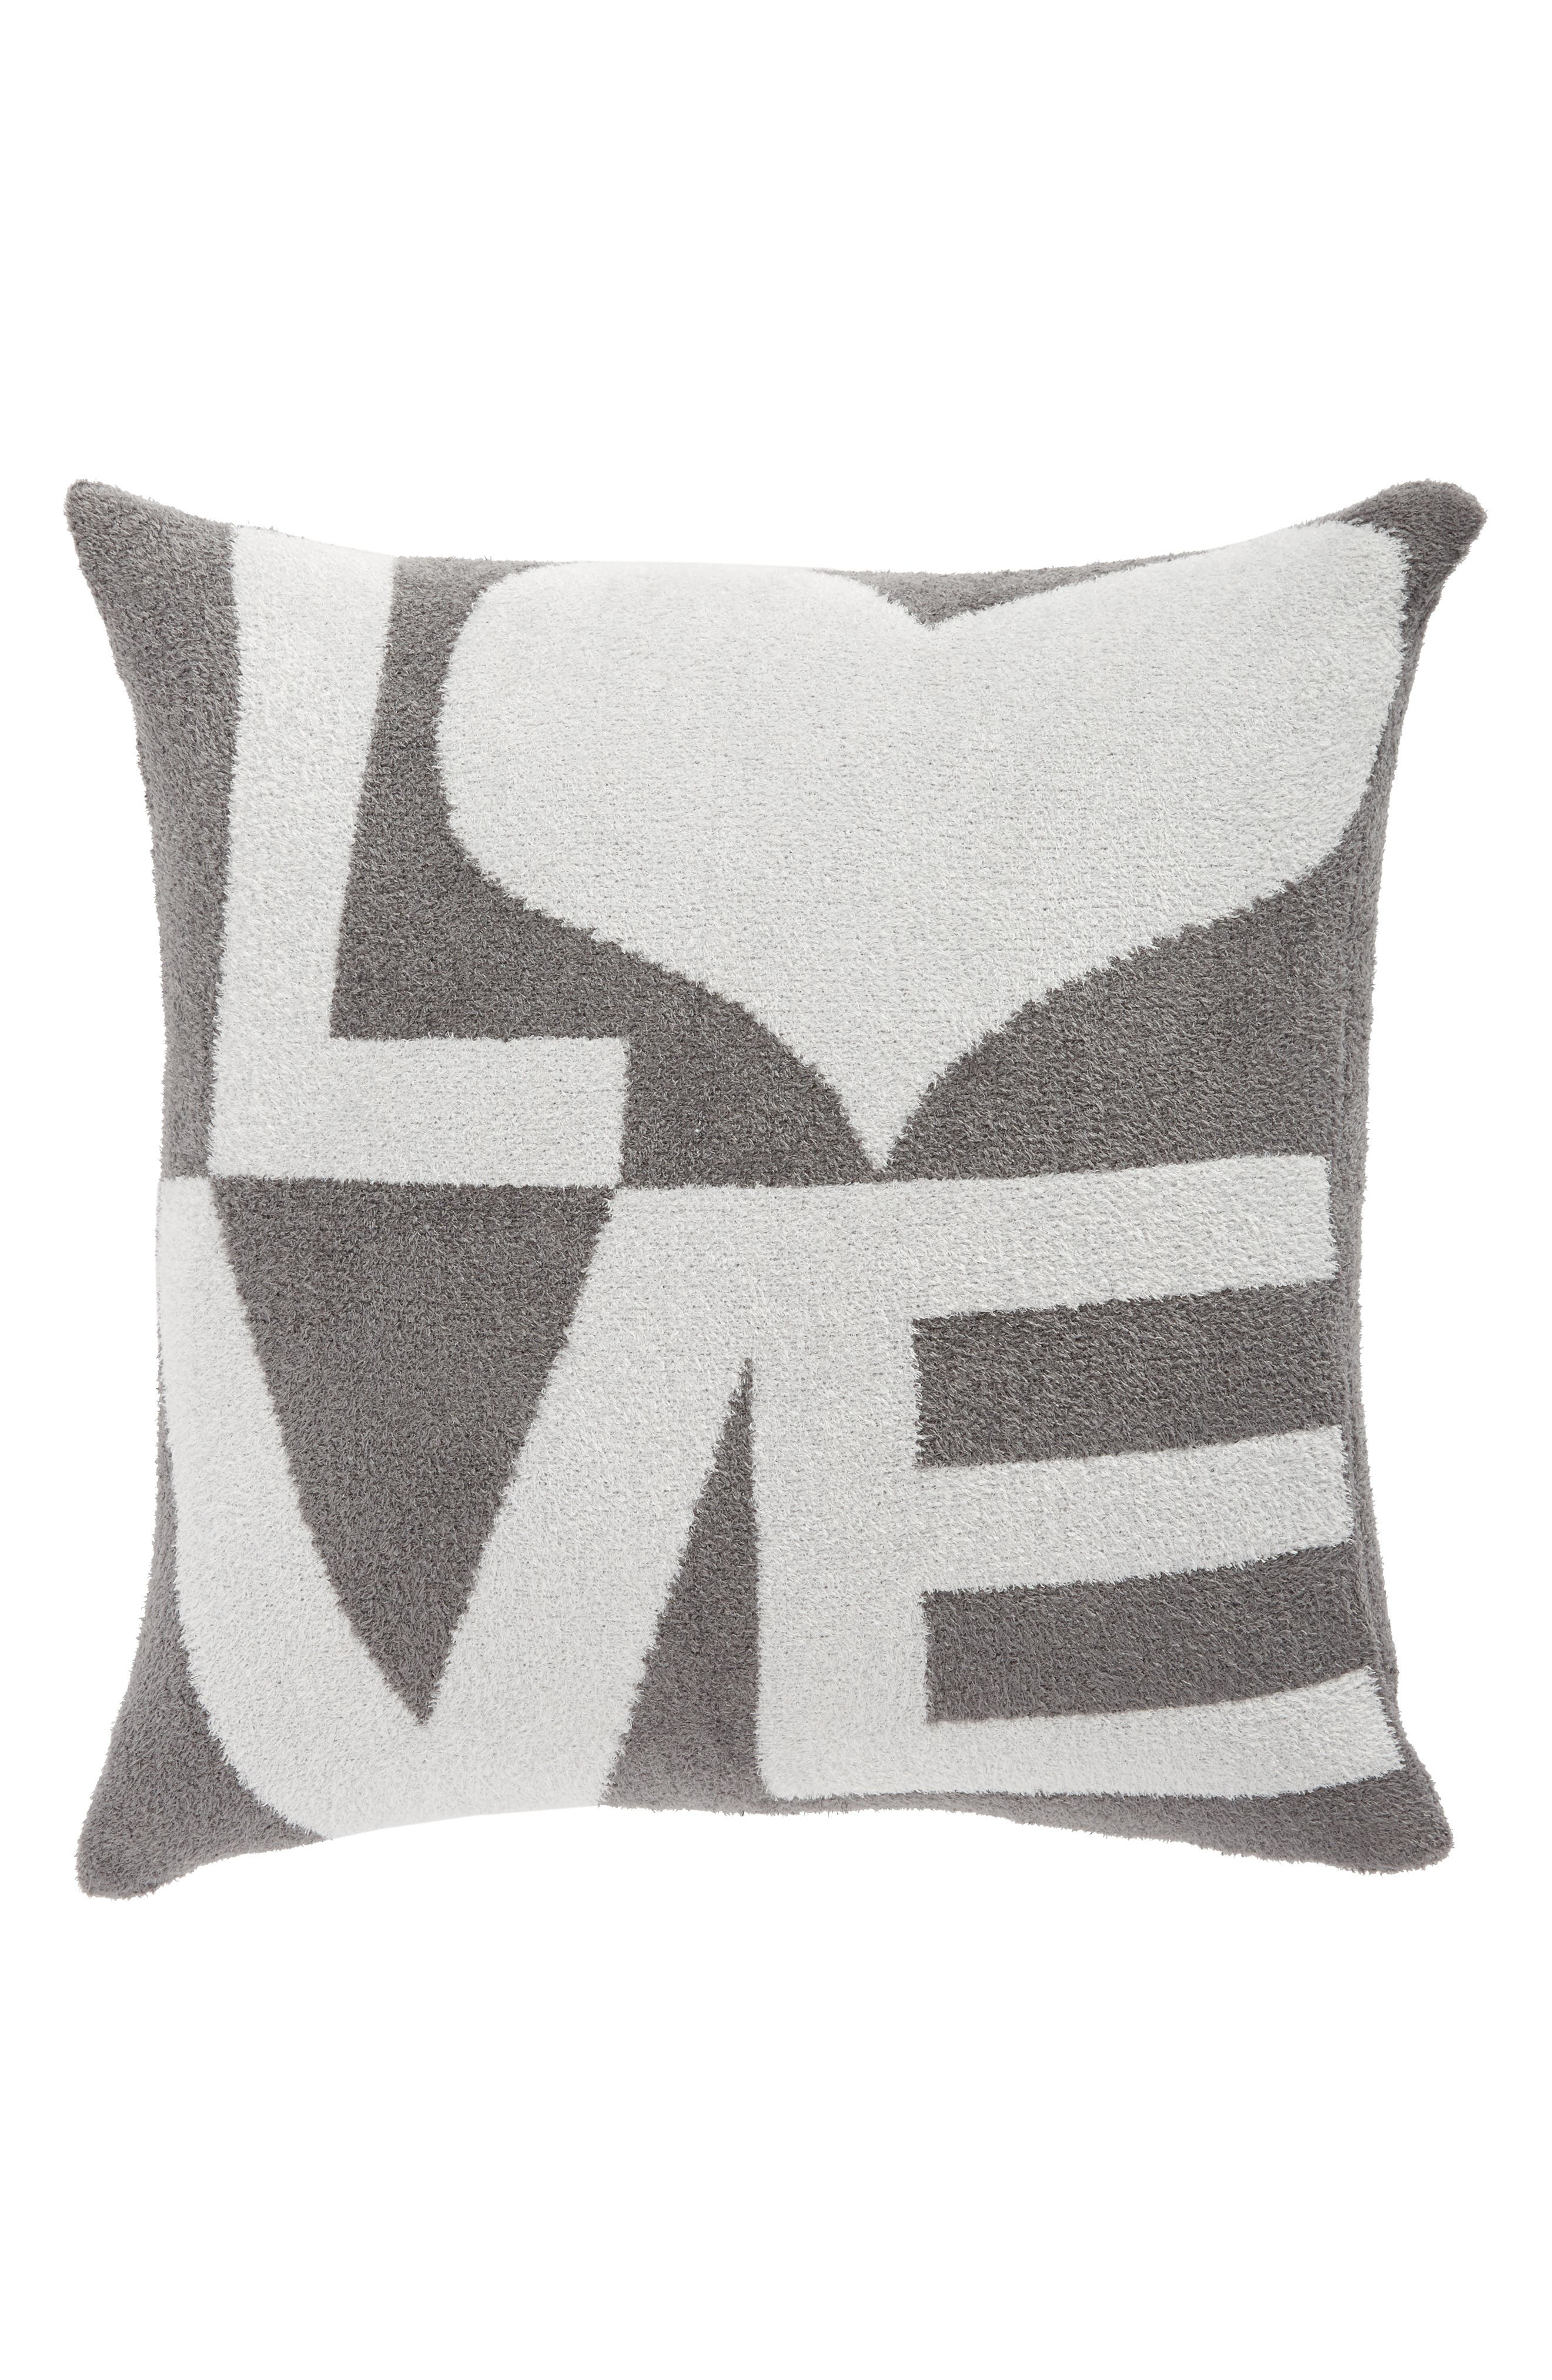 Dolce Love Throw Pillow,                         Main,                         color, Charcoal/ Silver